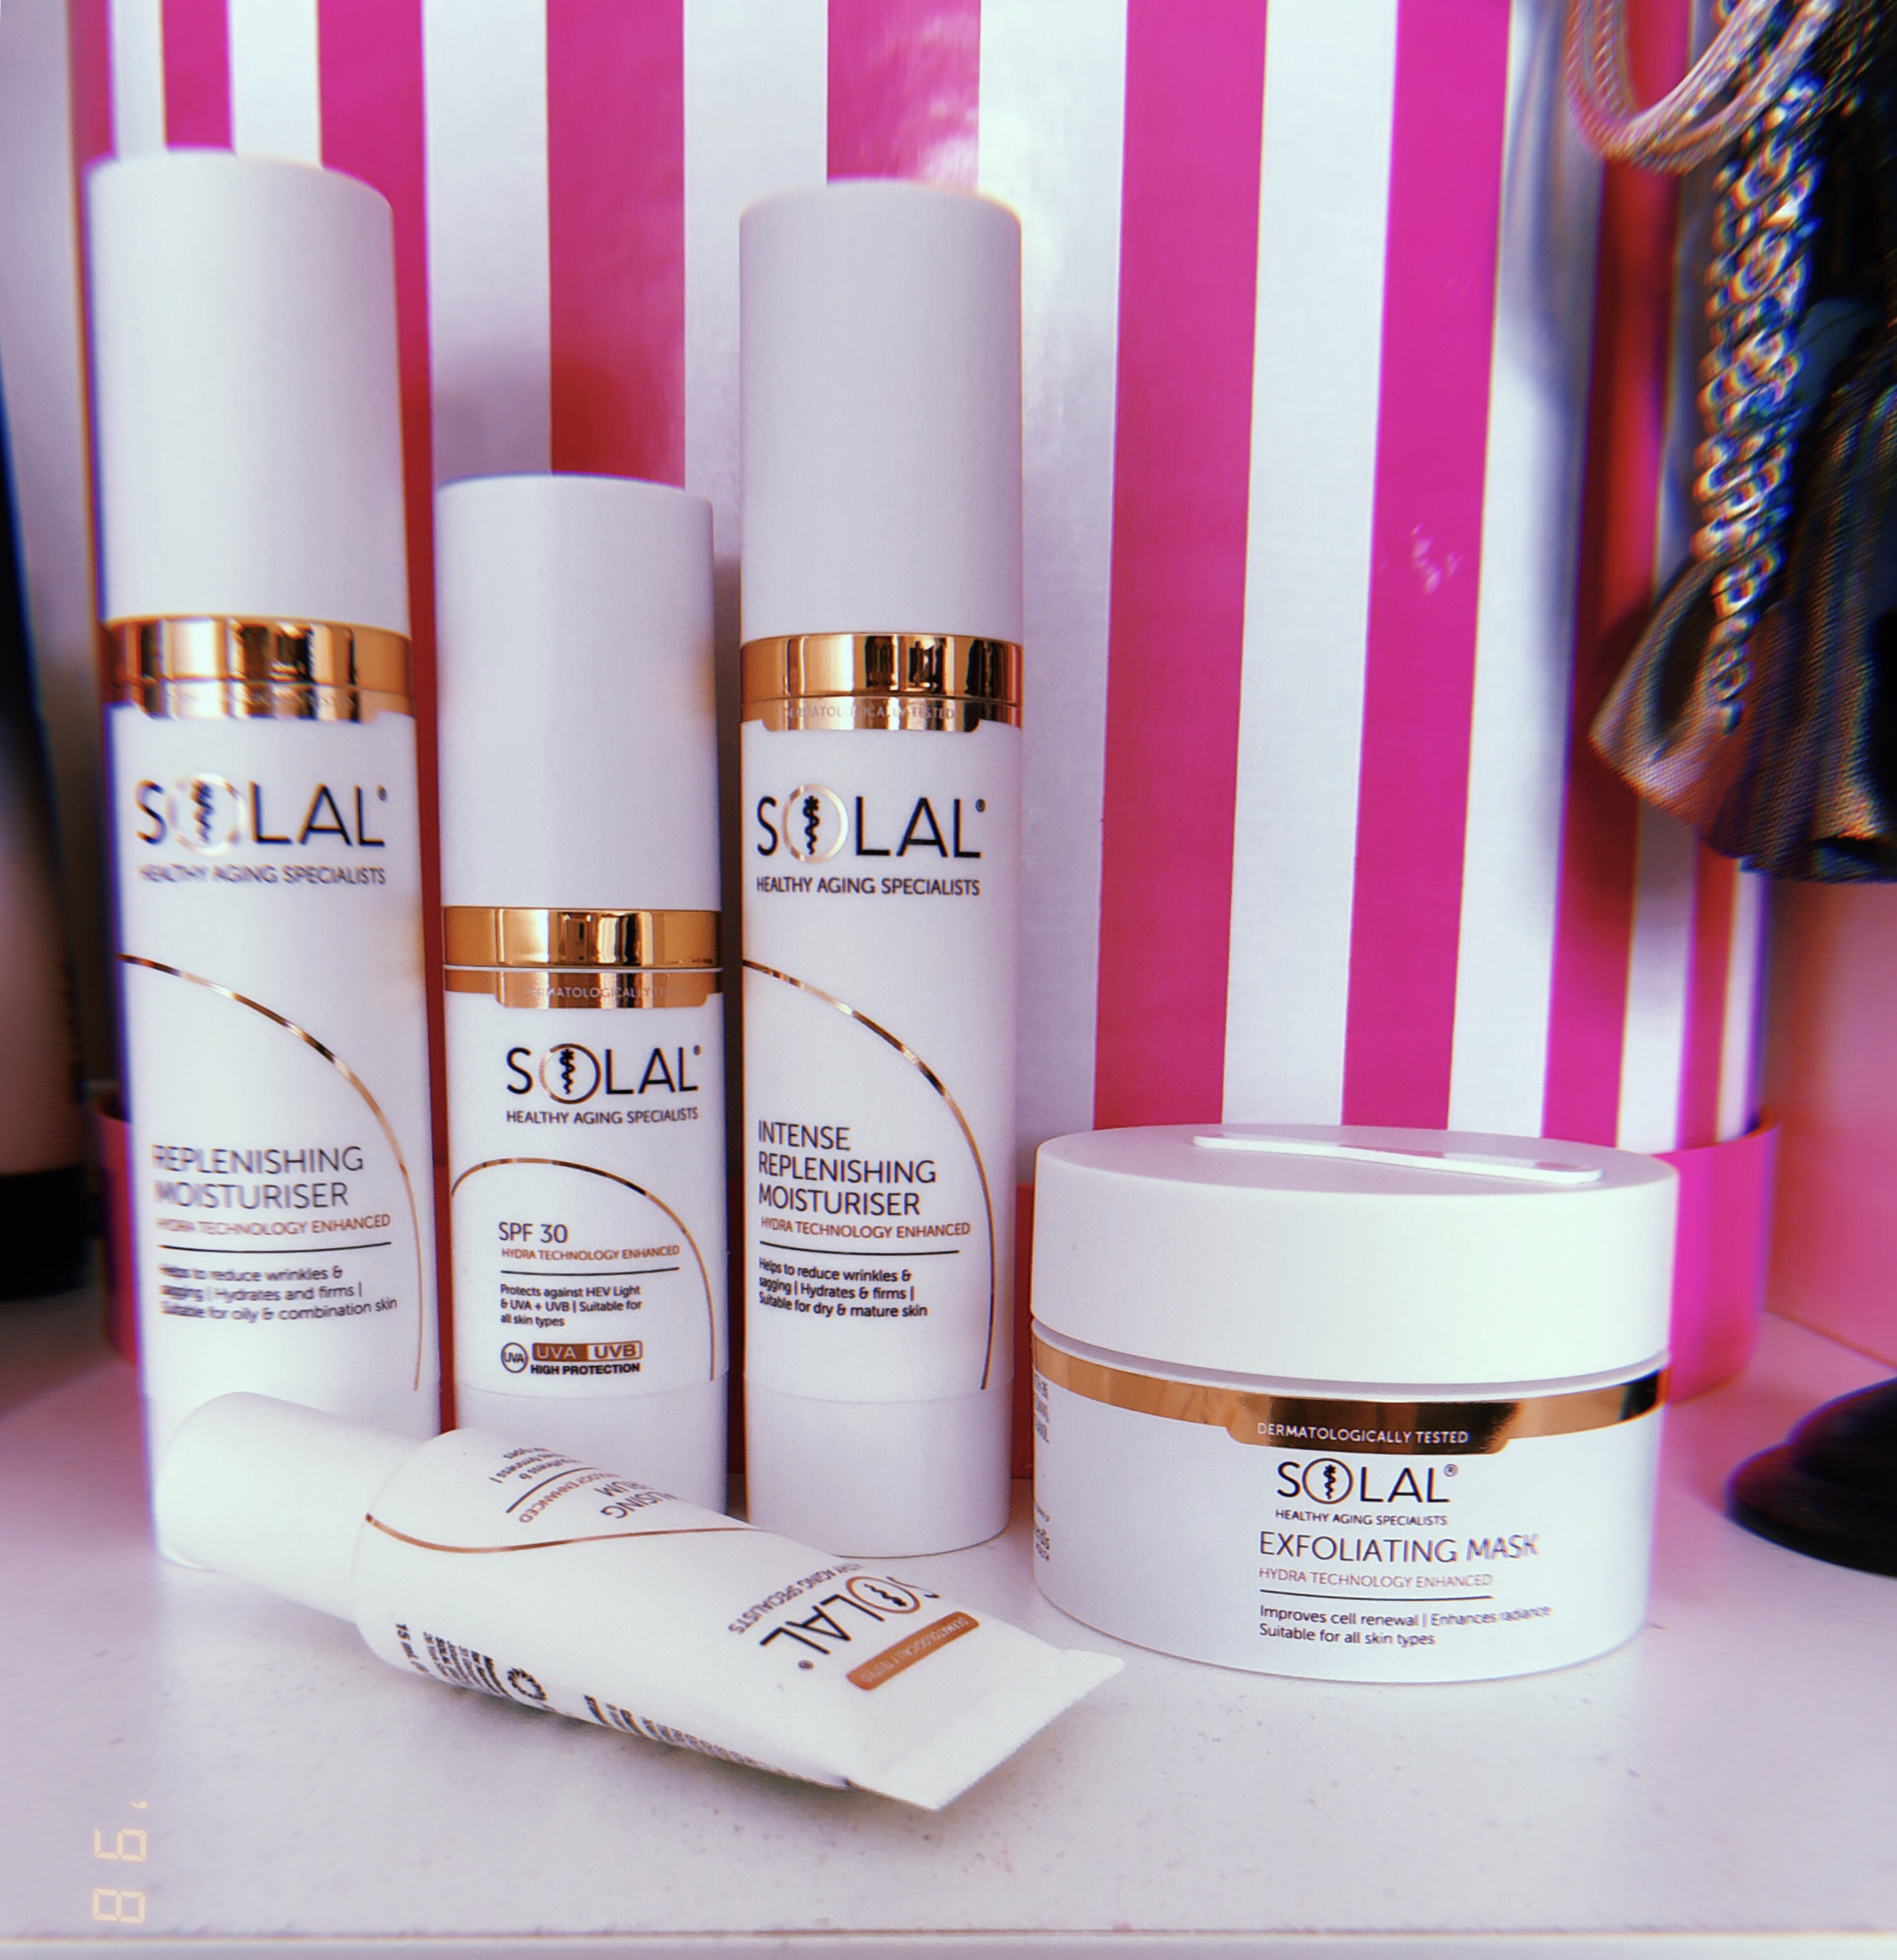 You are currently viewing Solal skincare – Review